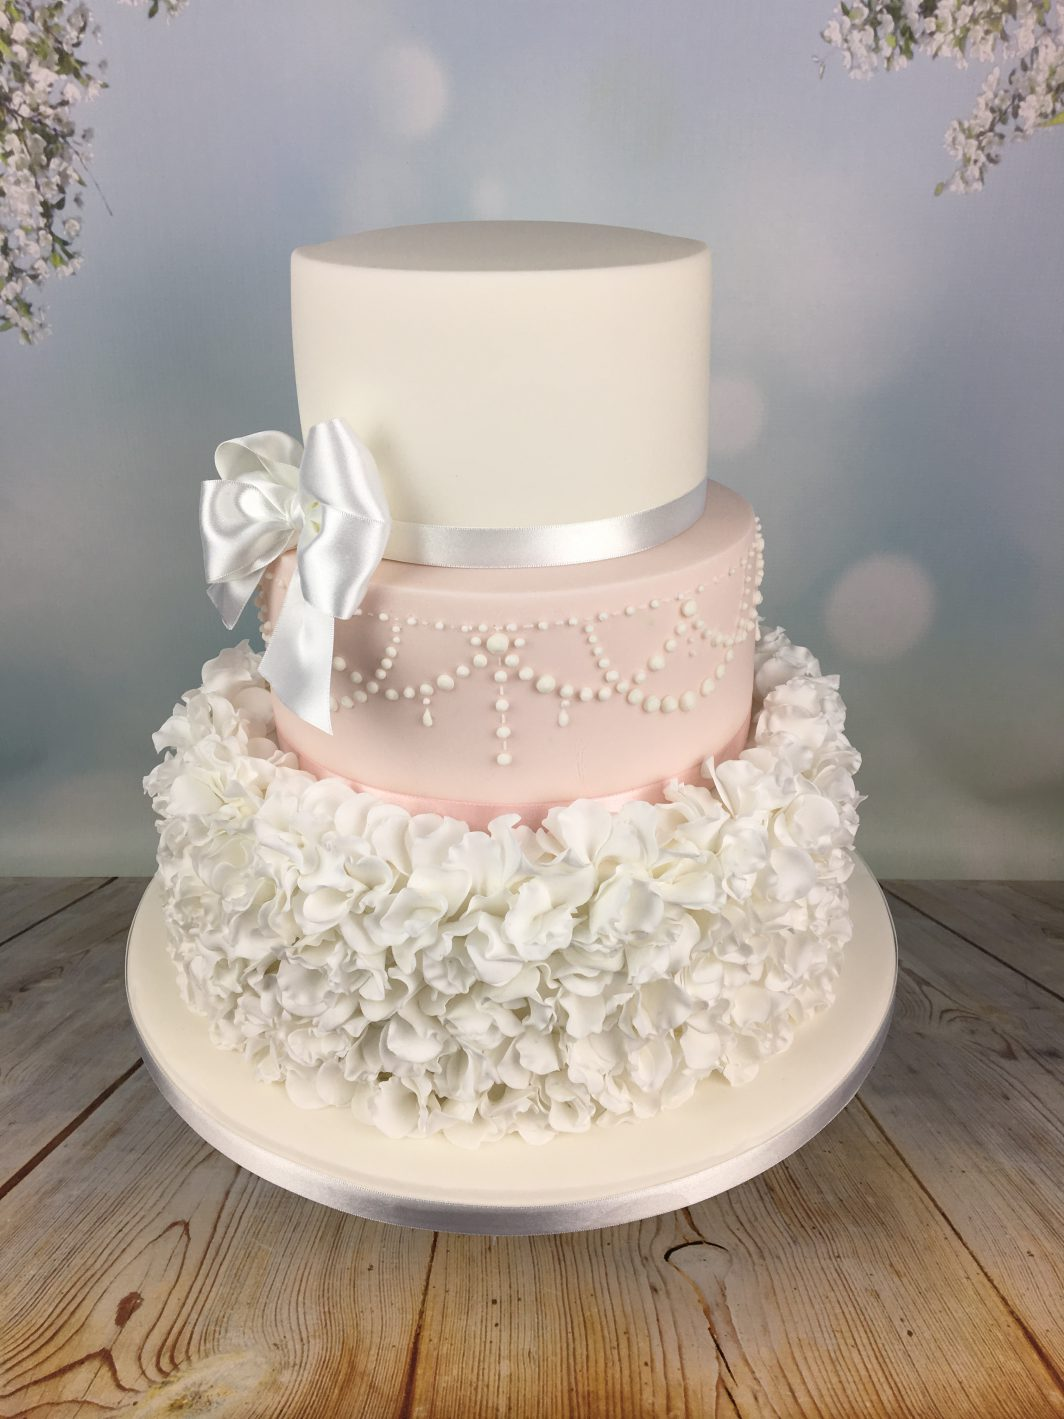 Pink And White Sugar Ruffles Wedding Cake - Mel\'s Amazing Cakes